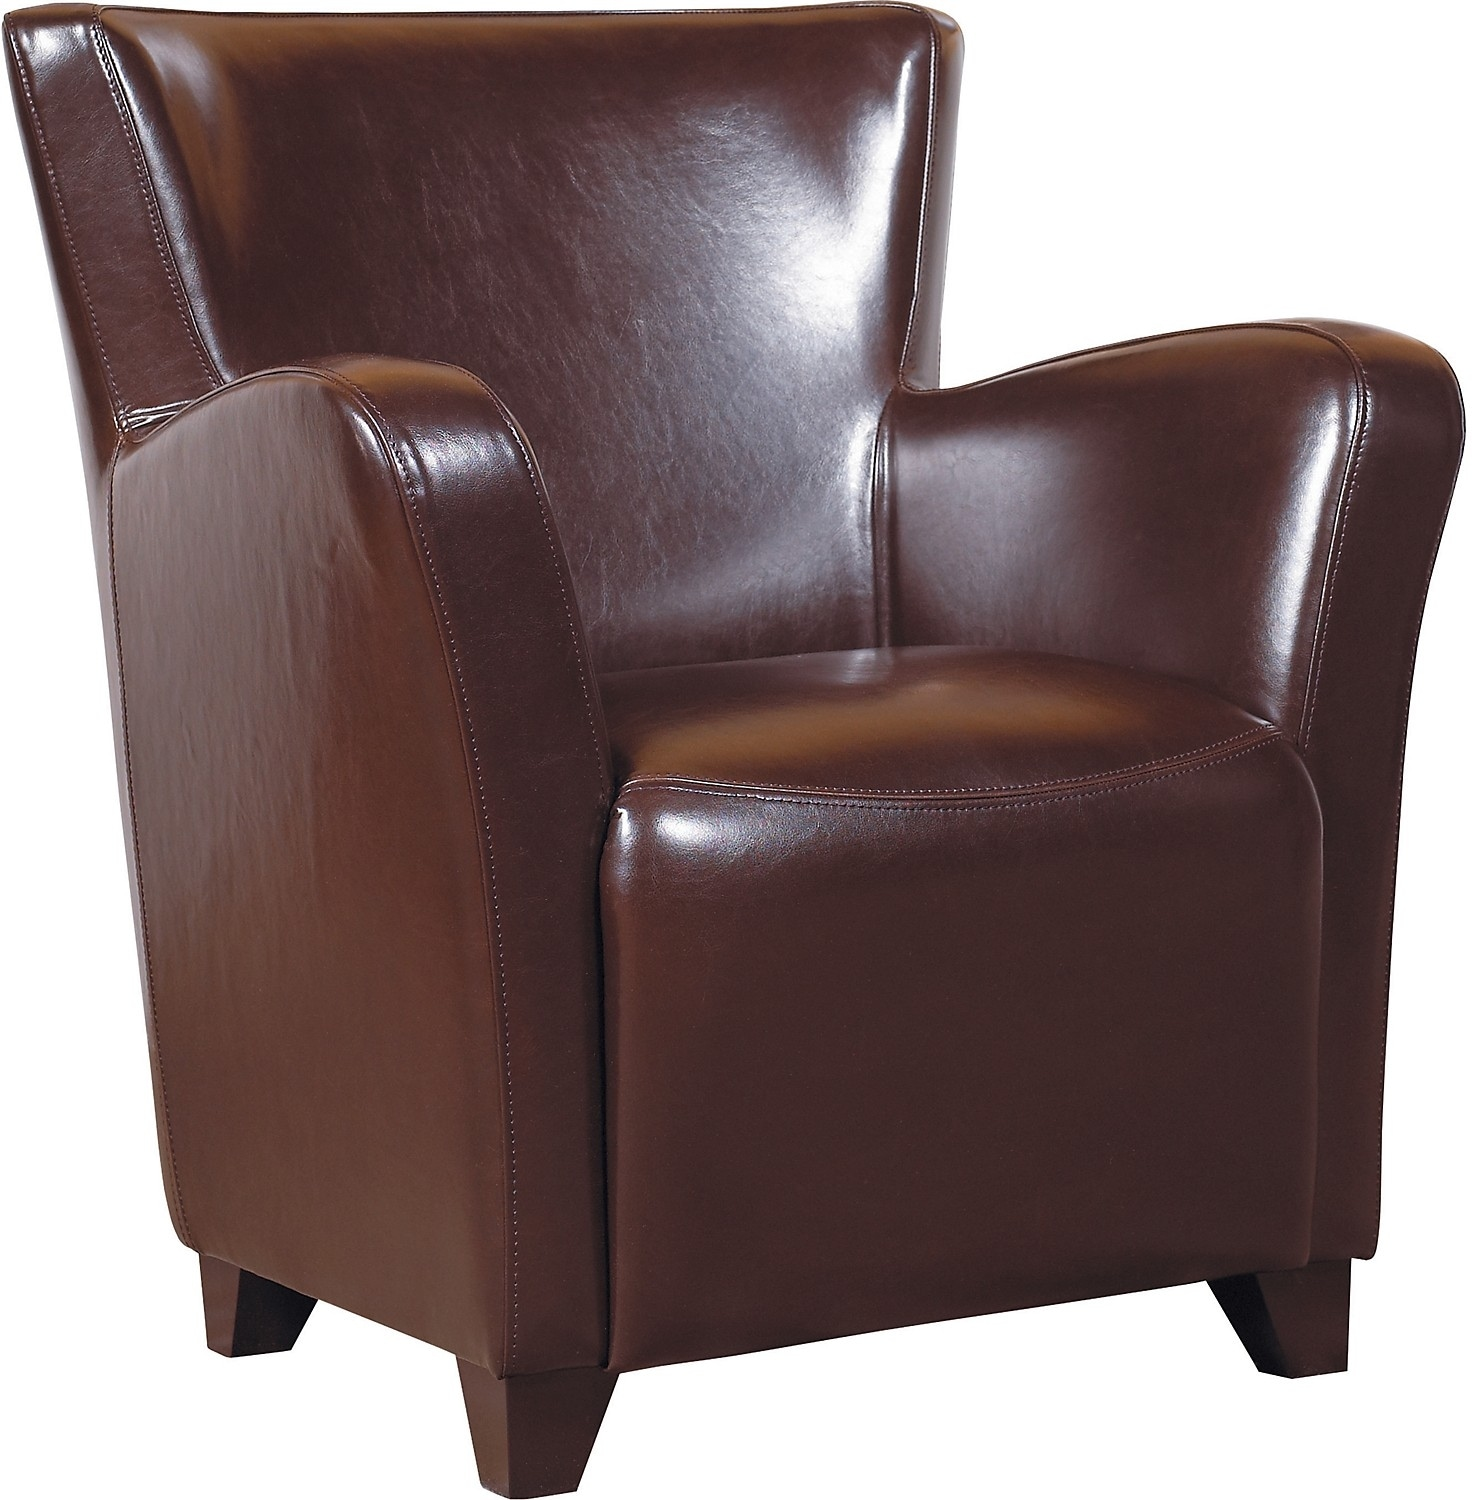 Living Room Furniture - Bonded Leather Chair - Brown